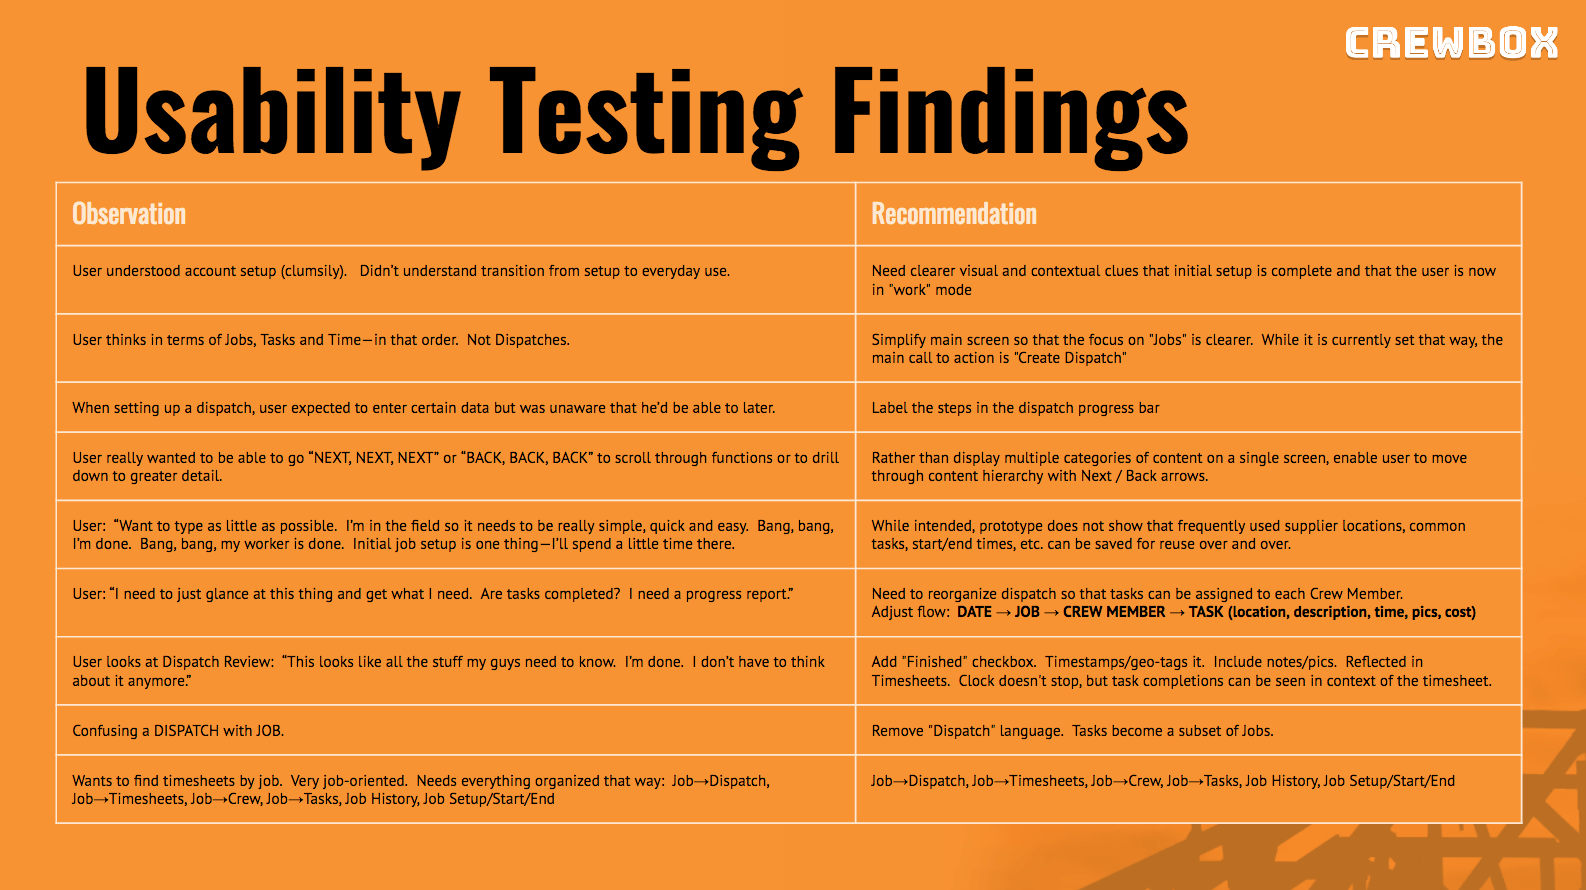 Usability Test Findings